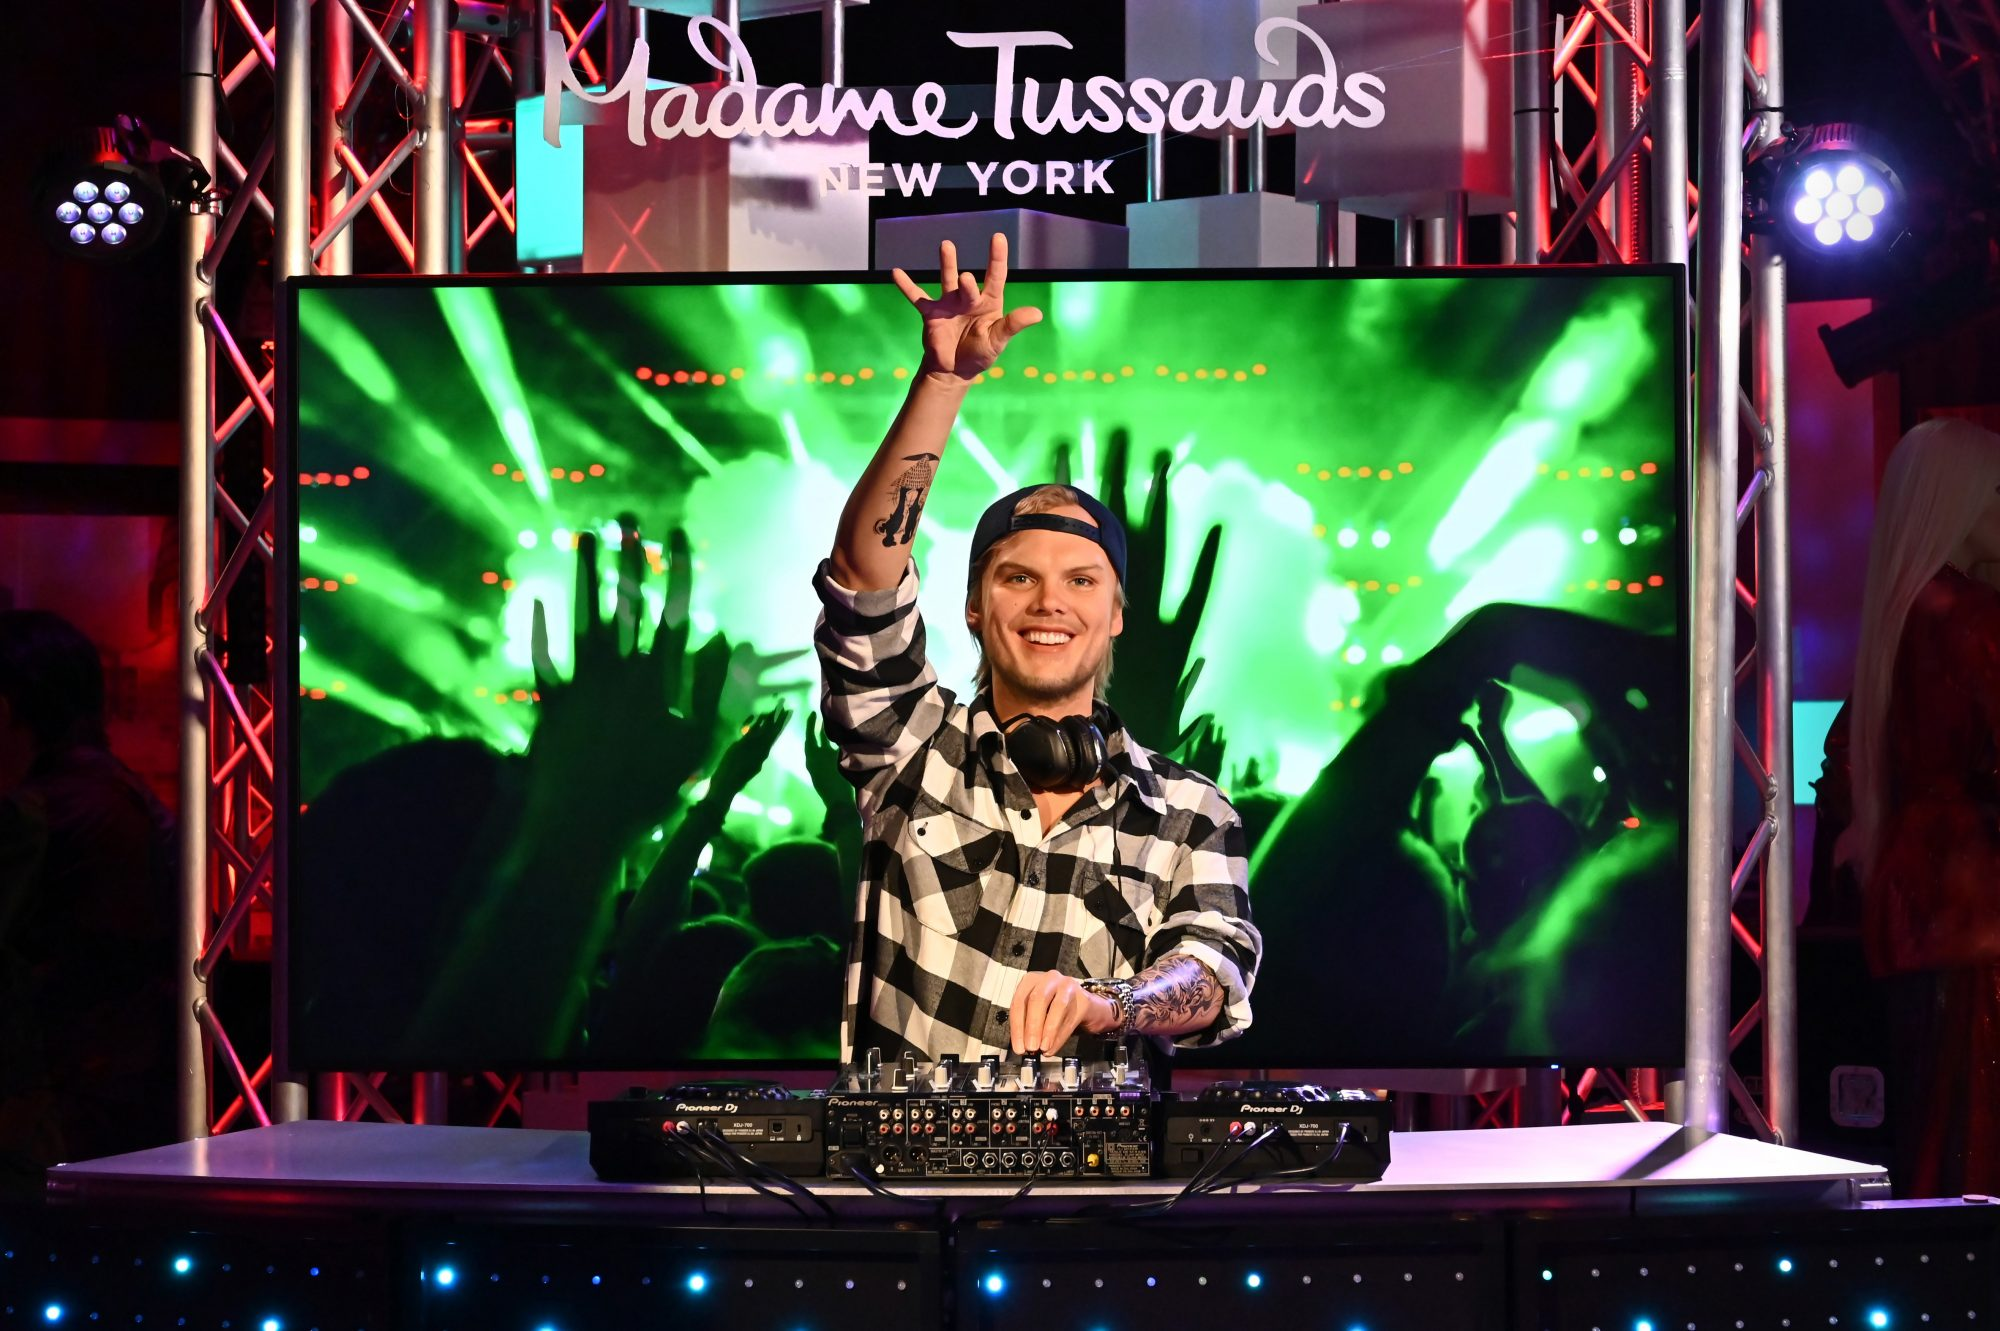 Avicii wax figure